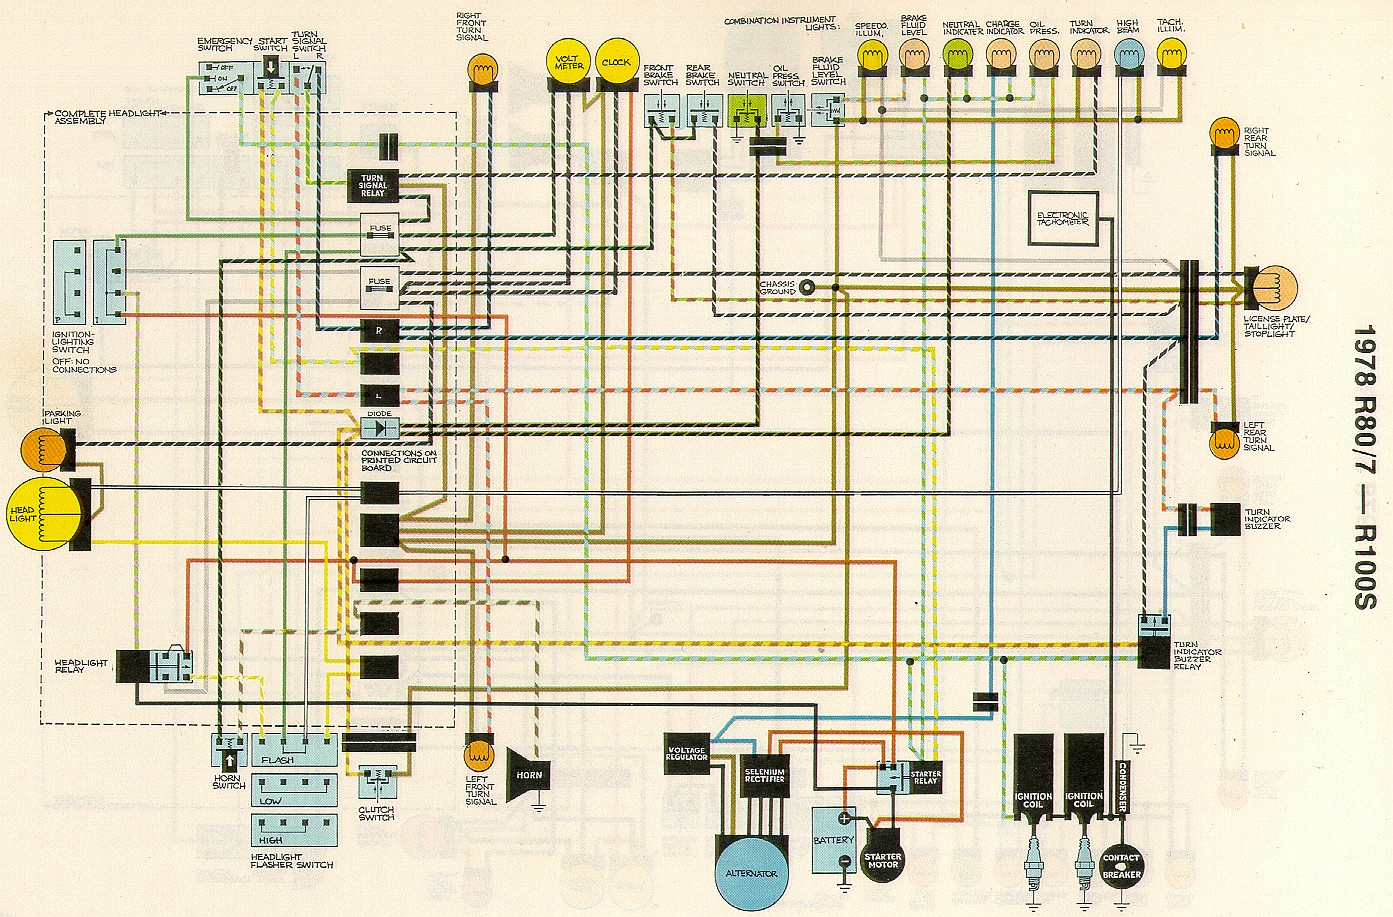 78 5 united articles wiring diagrams bmw r100 wiring diagram at gsmx.co